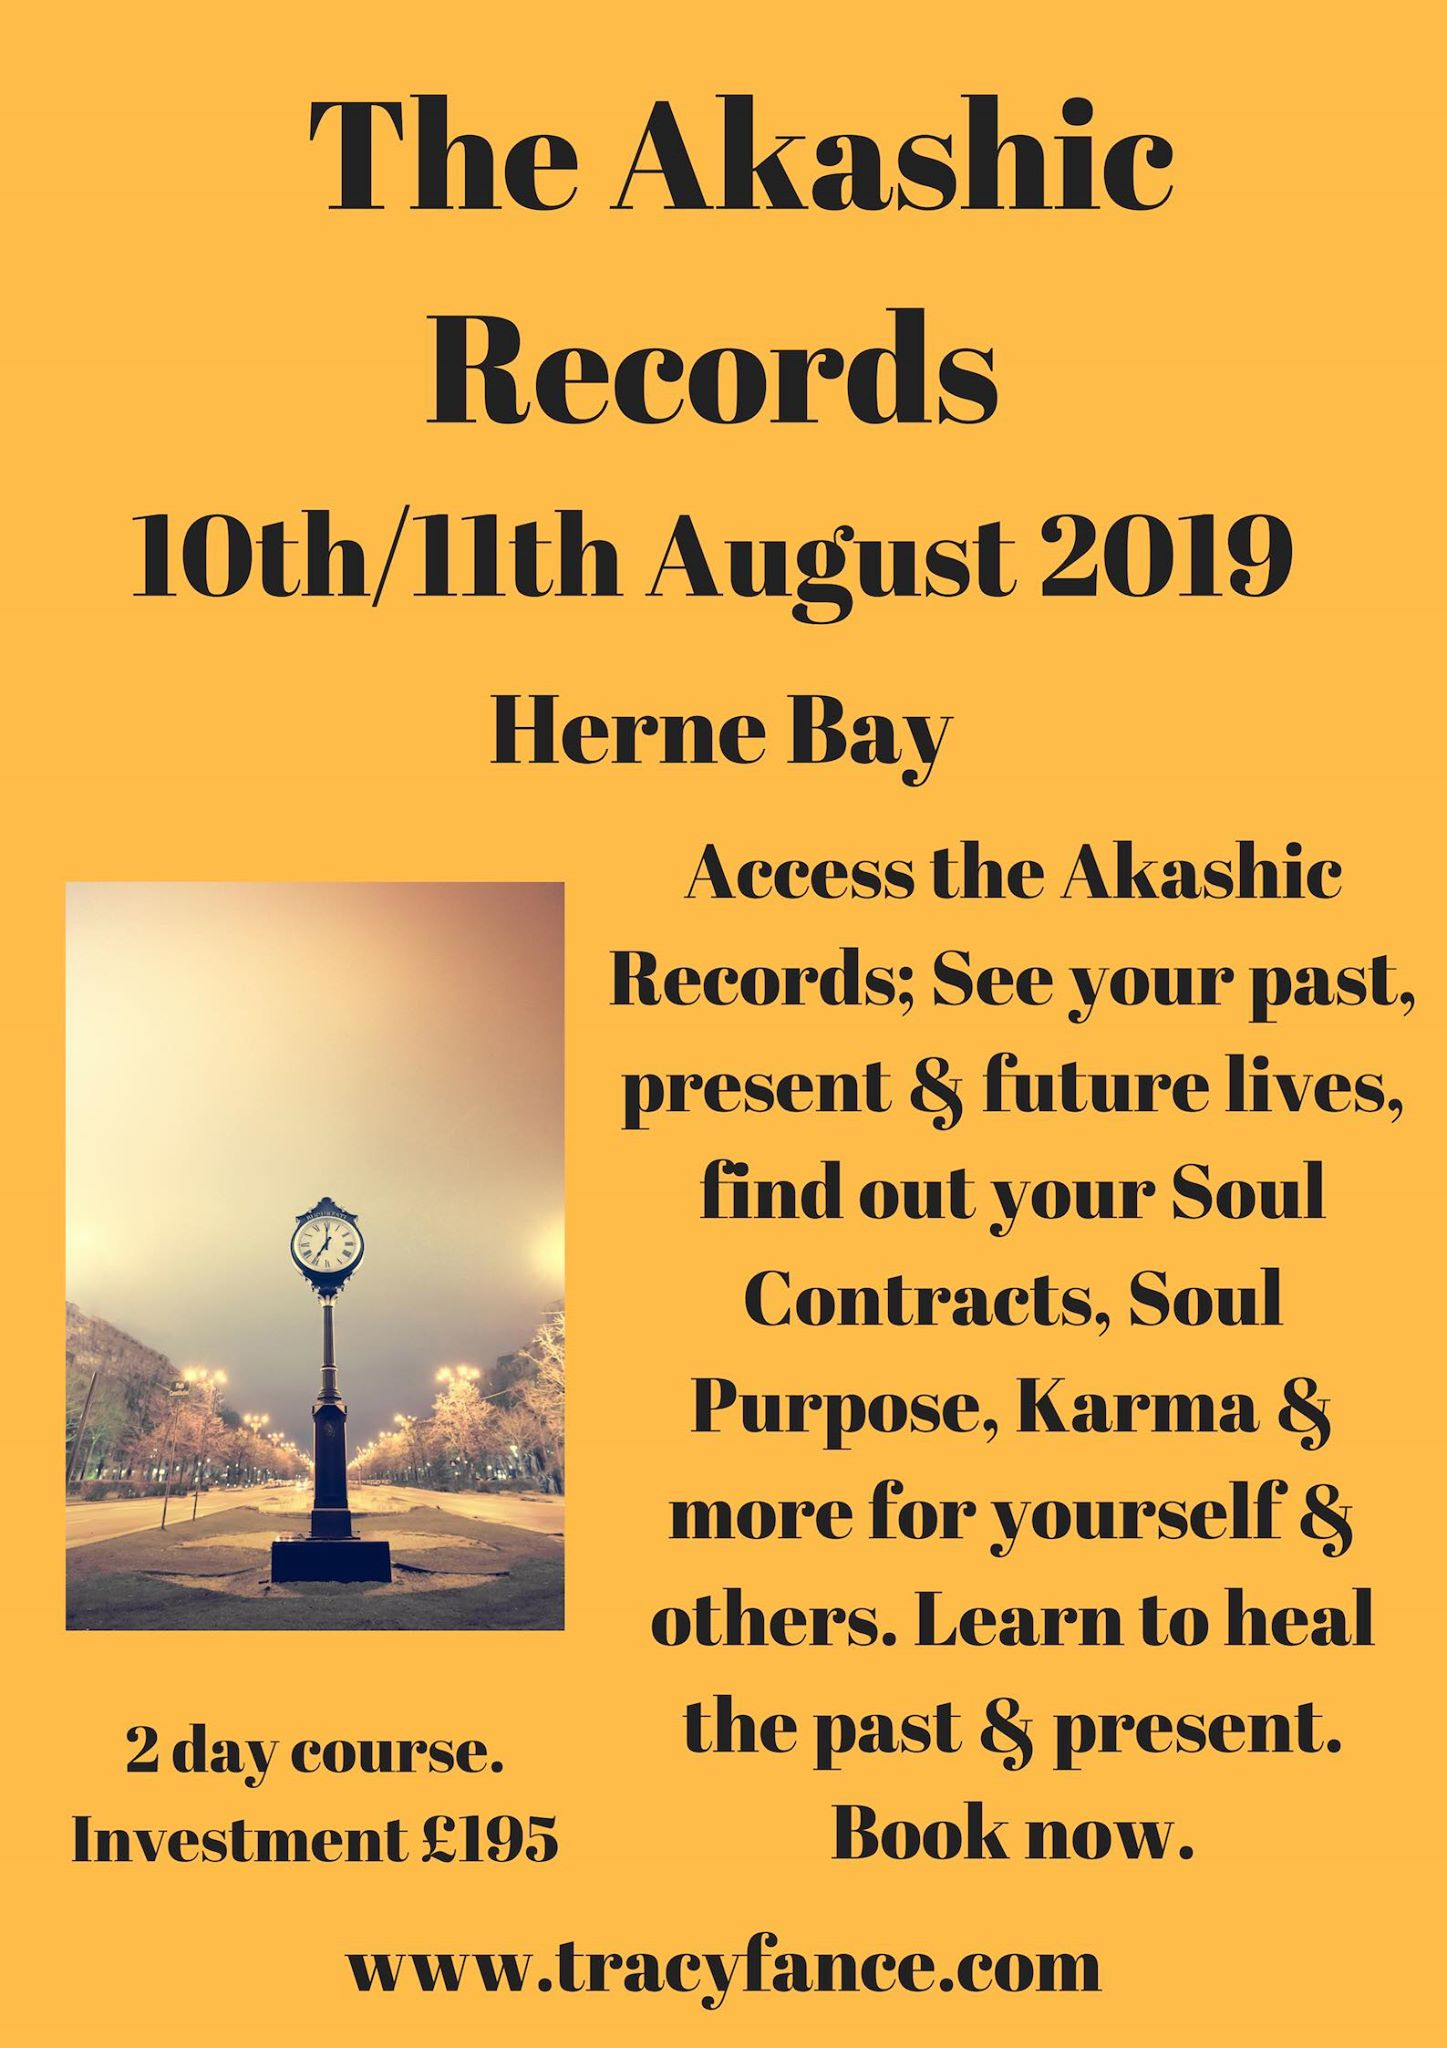 Tracy Fance Accessing the Akashic Records